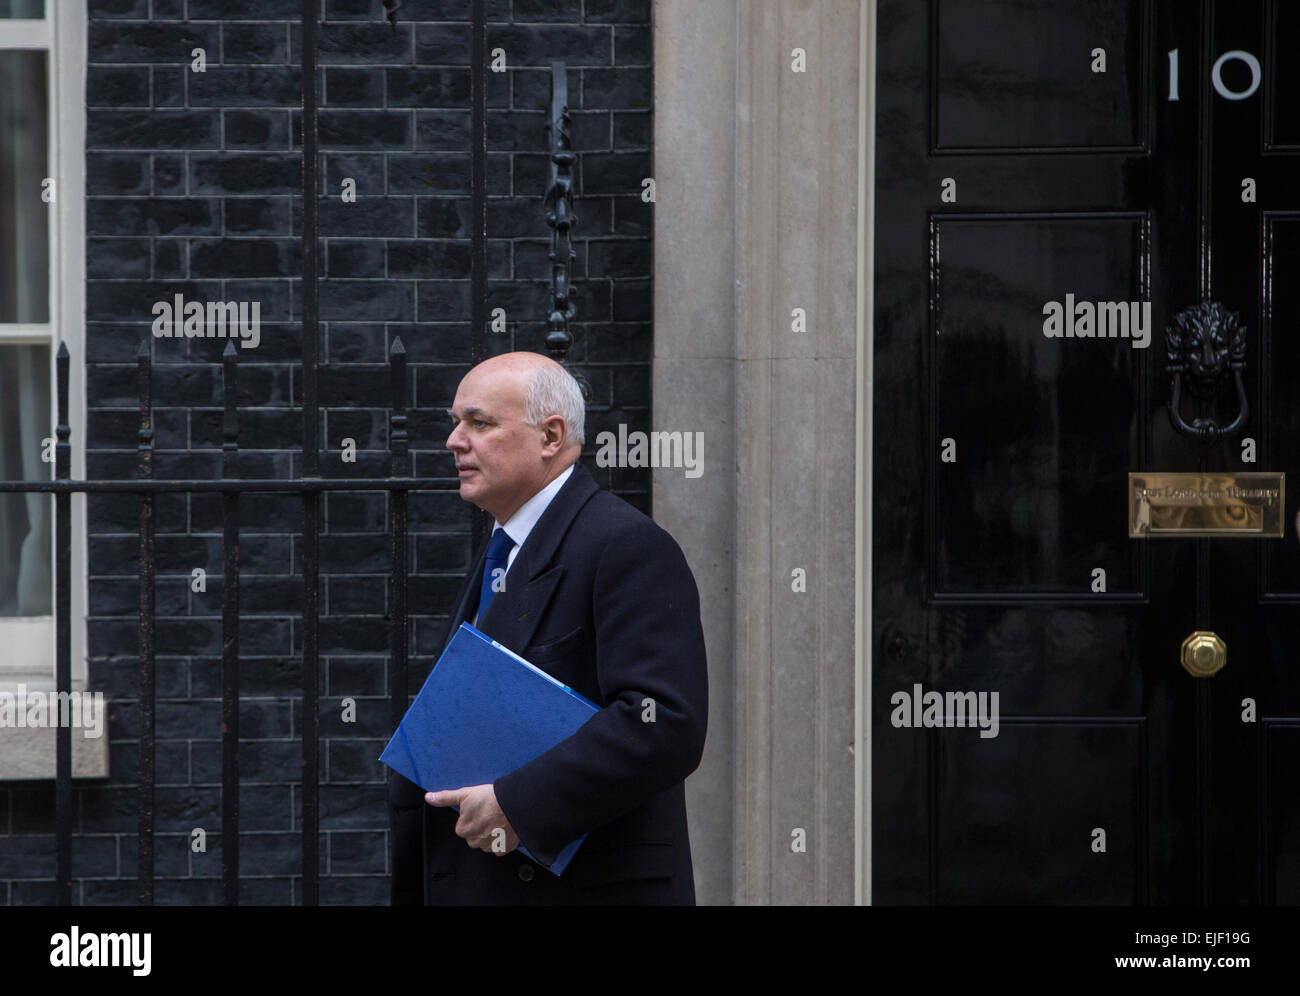 Iain Duncan Smith,Secretary of state for work and pensions,in Downing street - Stock Image